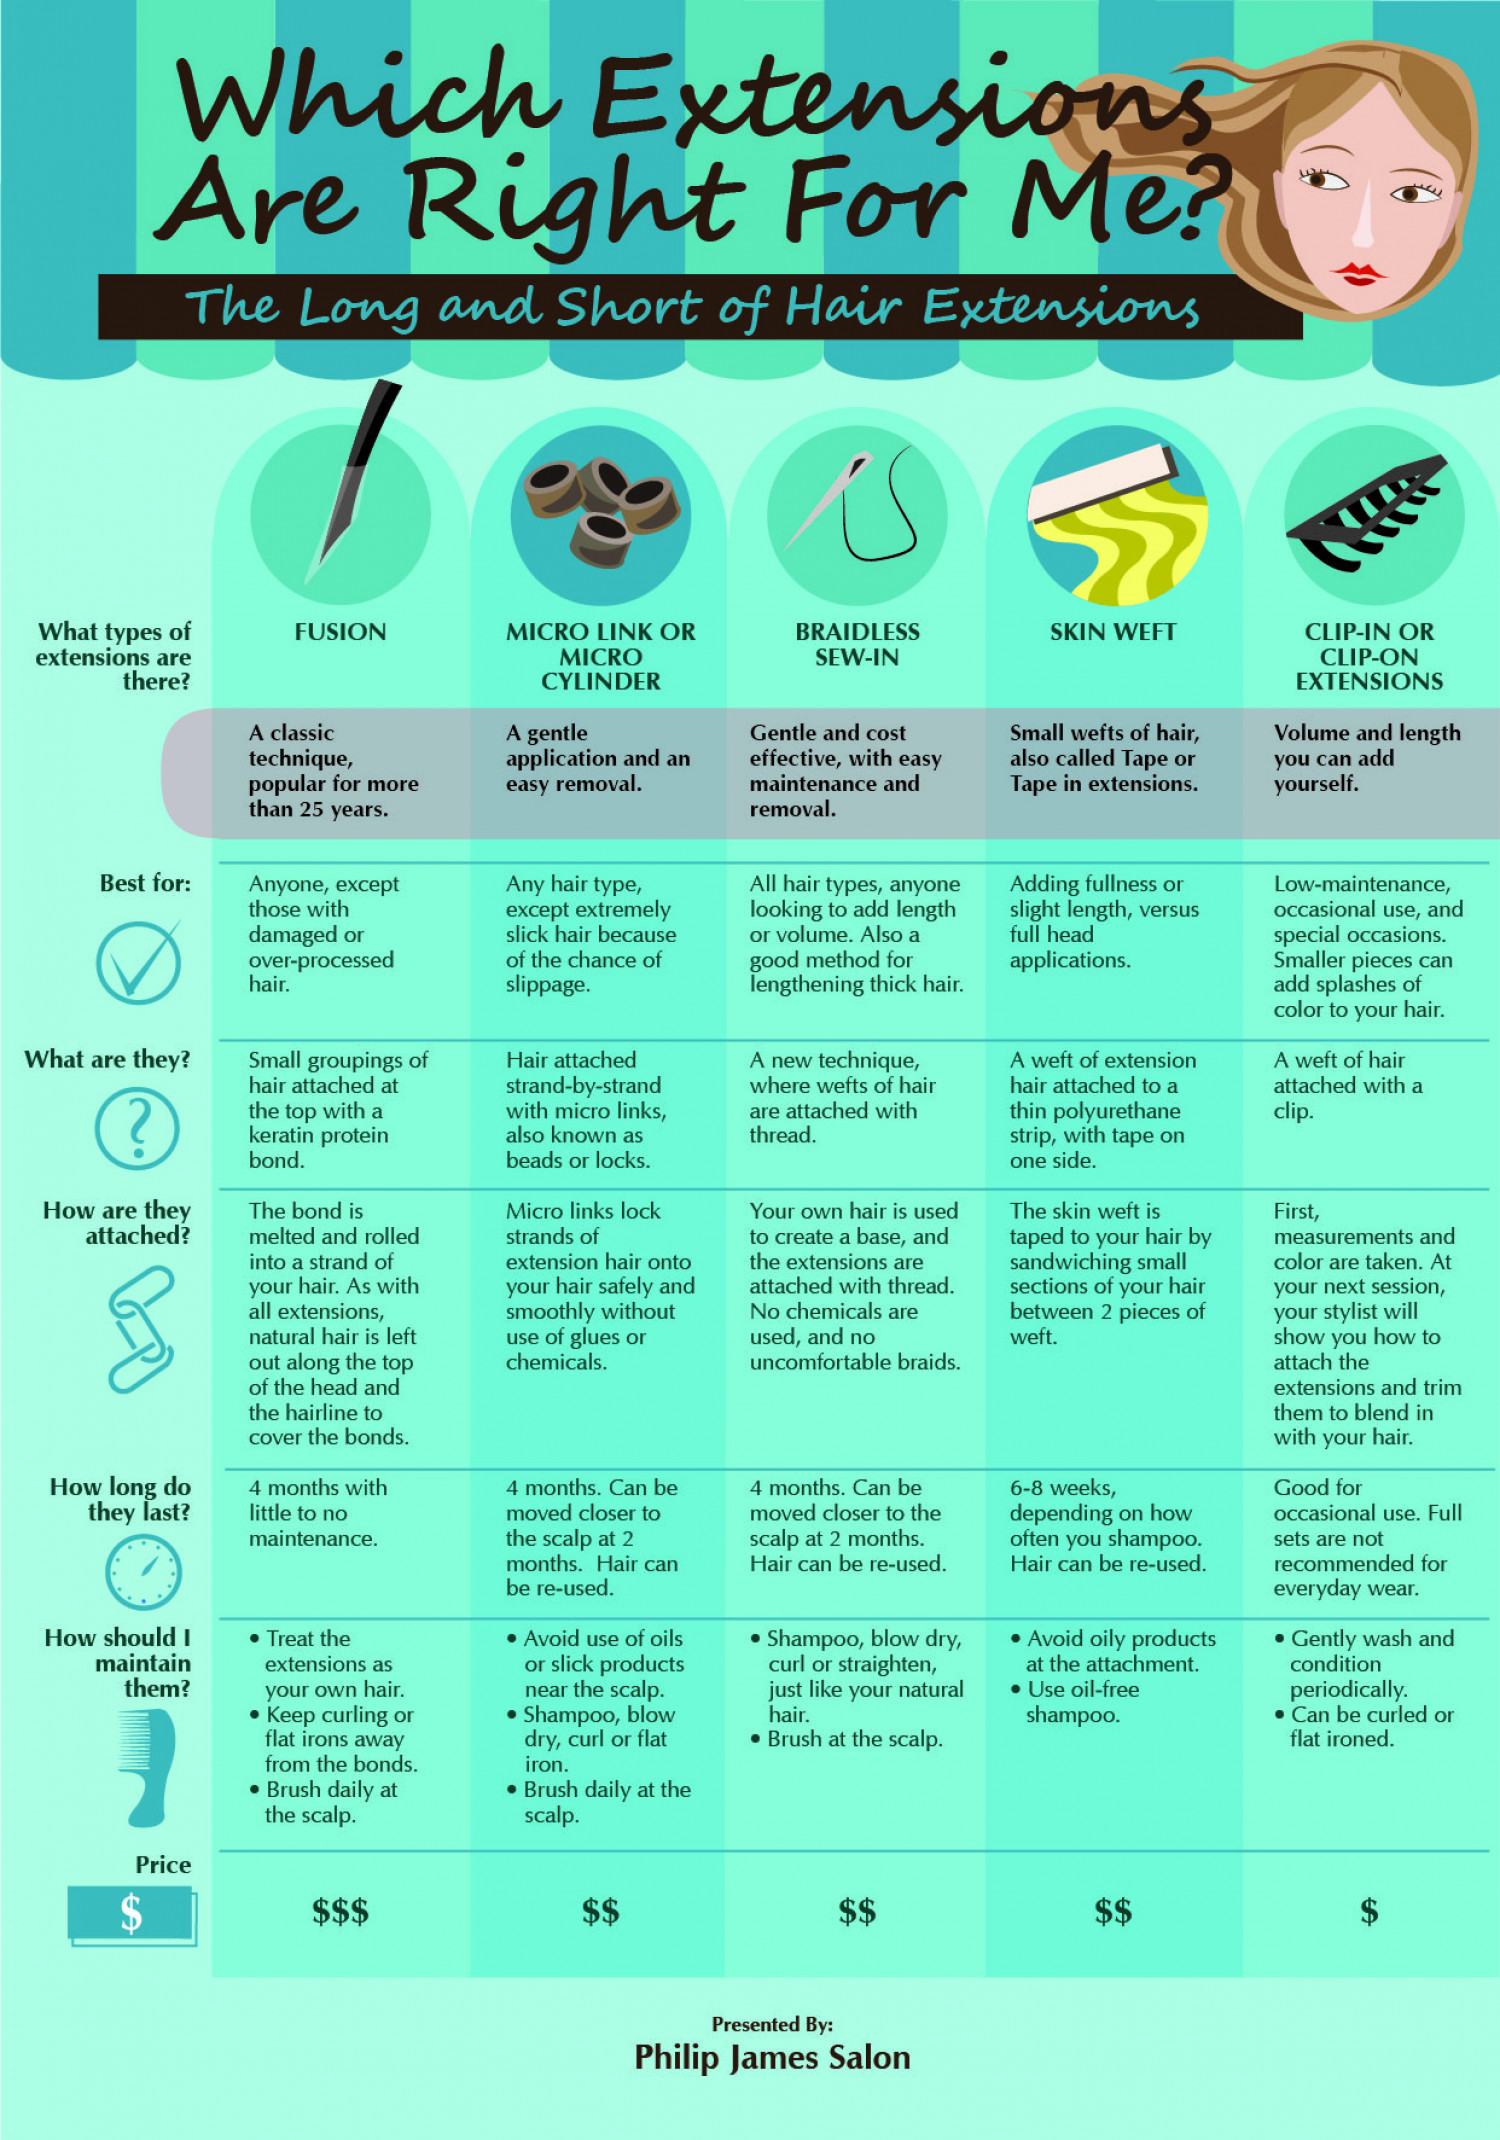 Which Extensions Are Right For Me? Infographic